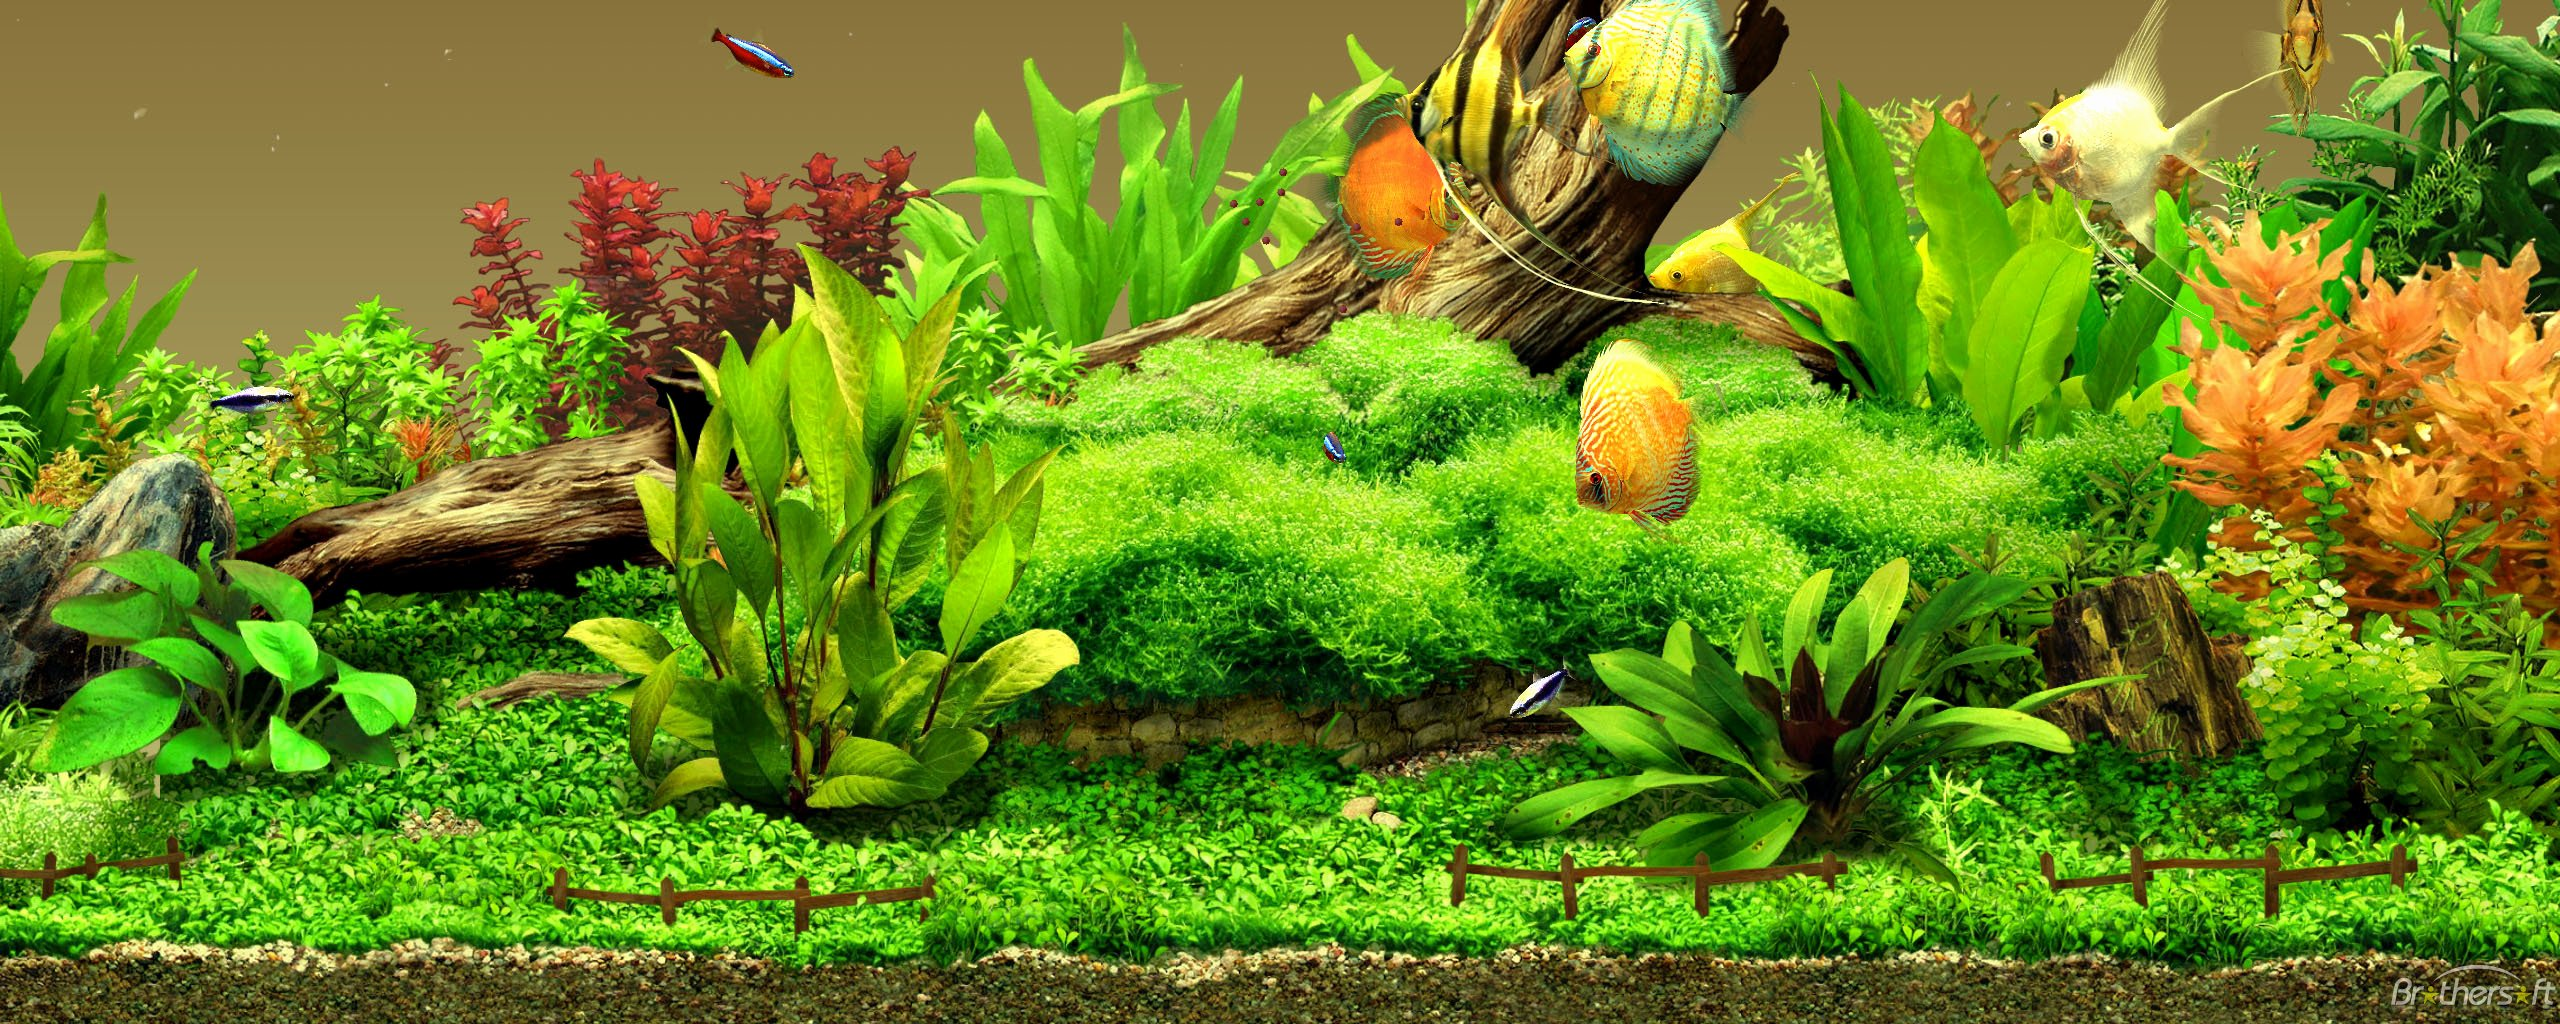 3d Fish Tank Wallpaper Awesome Aquarium High Definition Wallpapers Free Download